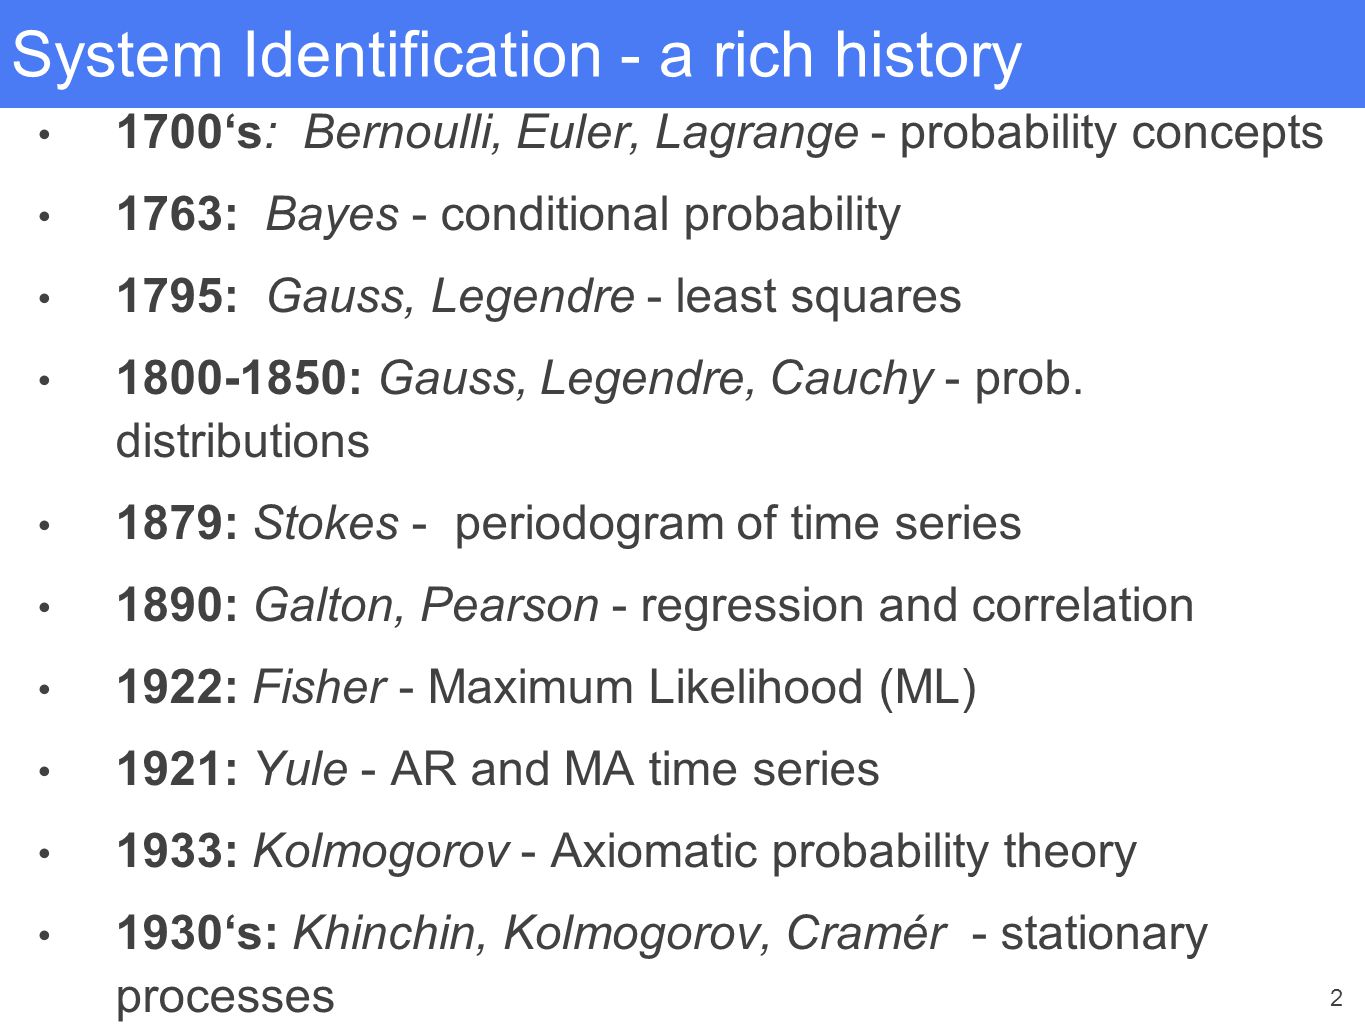 2 System Identification - a rich history 1700's: Bernoulli, Euler, Lagrange - probability concepts 1763: Bayes - conditional probability 1795: Gauss,